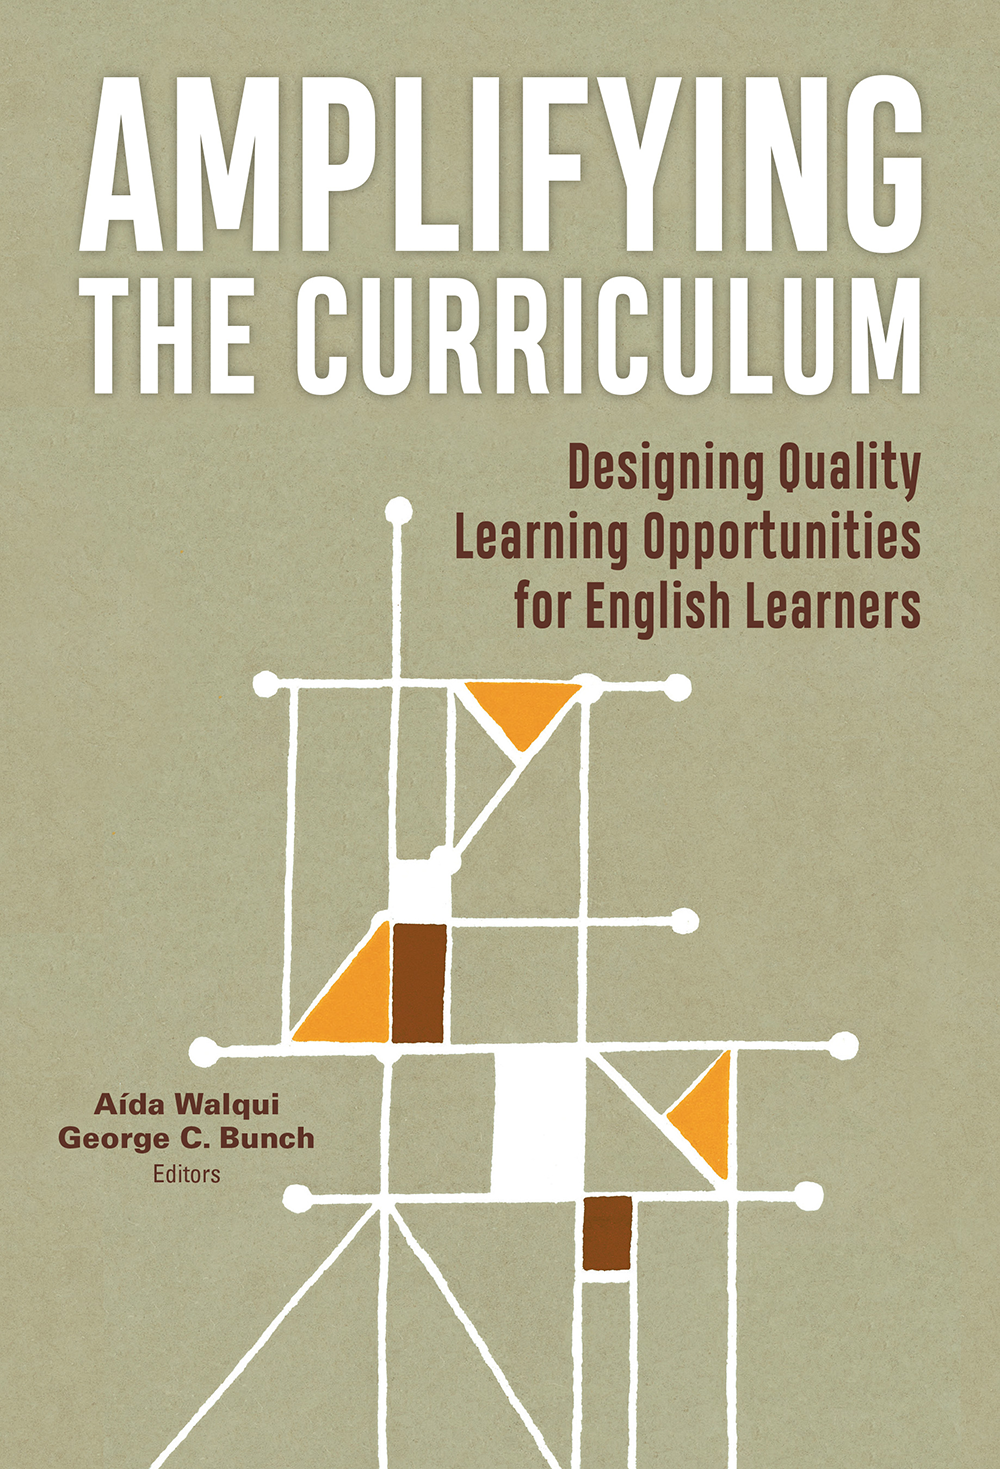 Amplifying the Curriculum: Designing Quality Learning Opportunities for English Learners